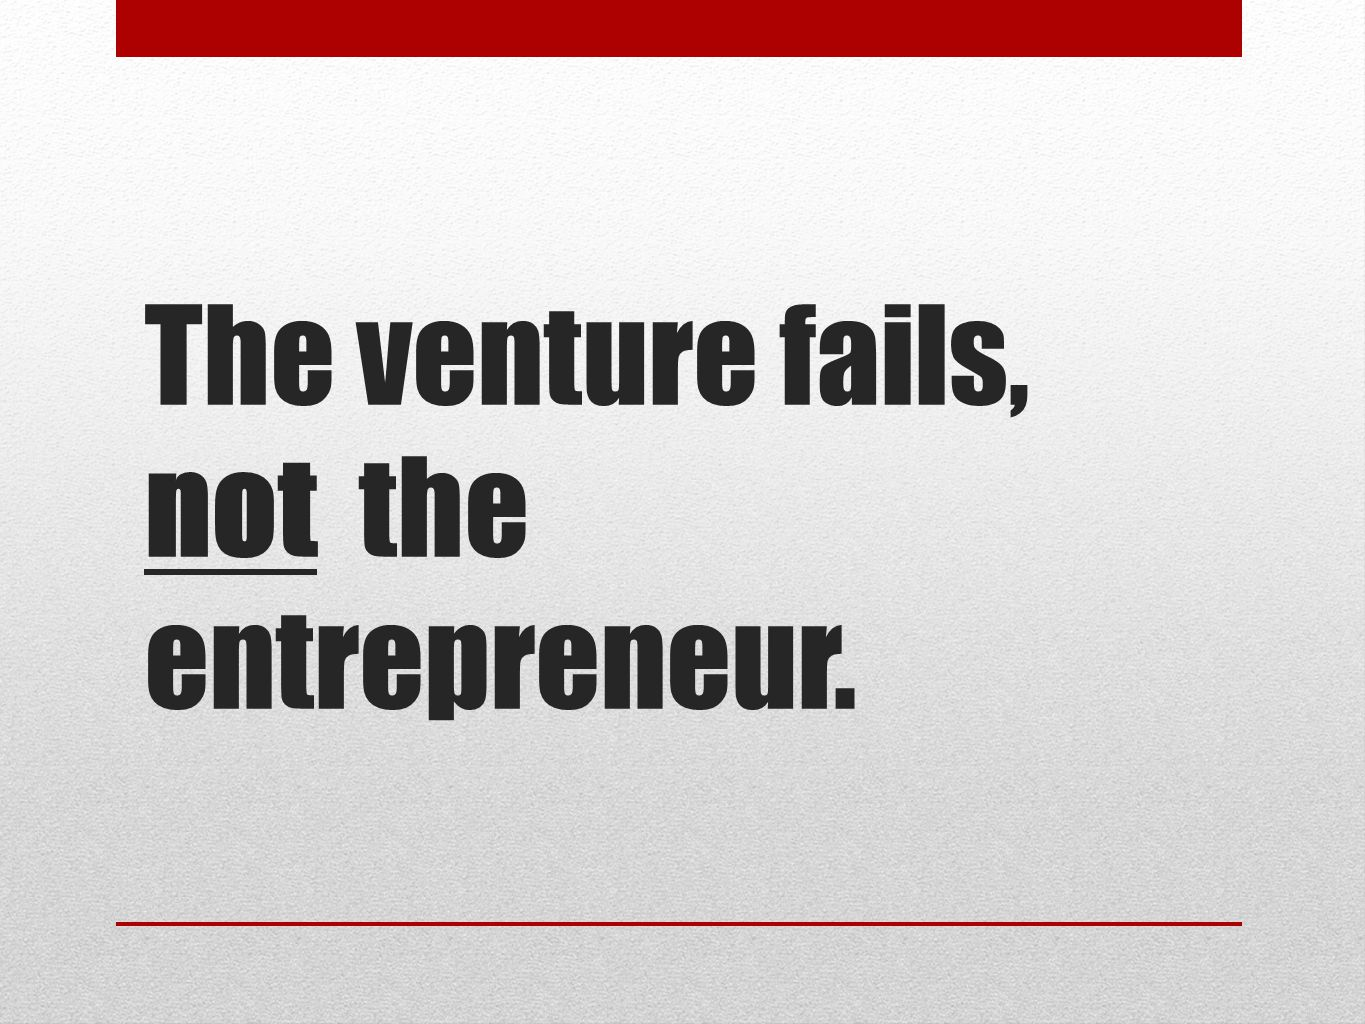 The venture fails, not the entrepreneur.